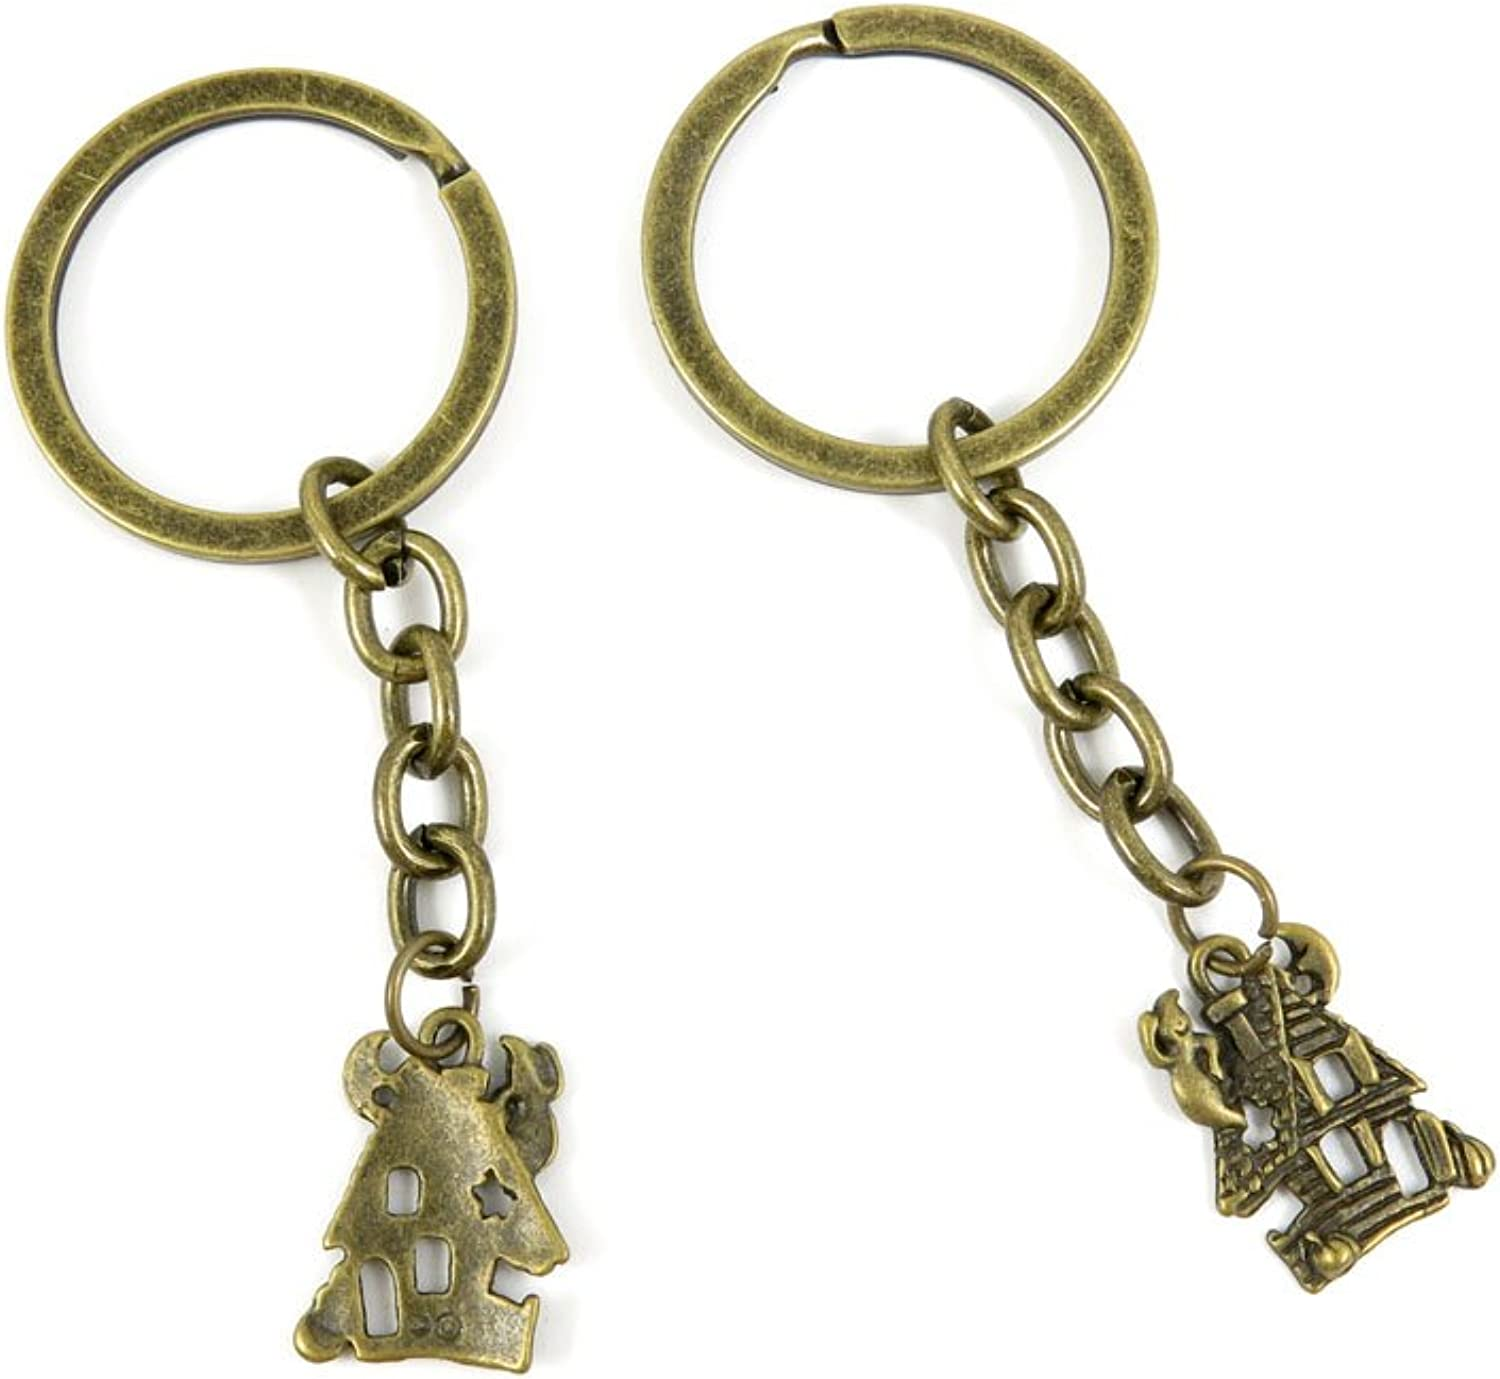 220 Pieces Fashion Jewelry Keyring Keychain Door Car Key Tag Ring Chain Supplier Supply Wholesale Bulk Lots K6CH2 Haunted Elf House